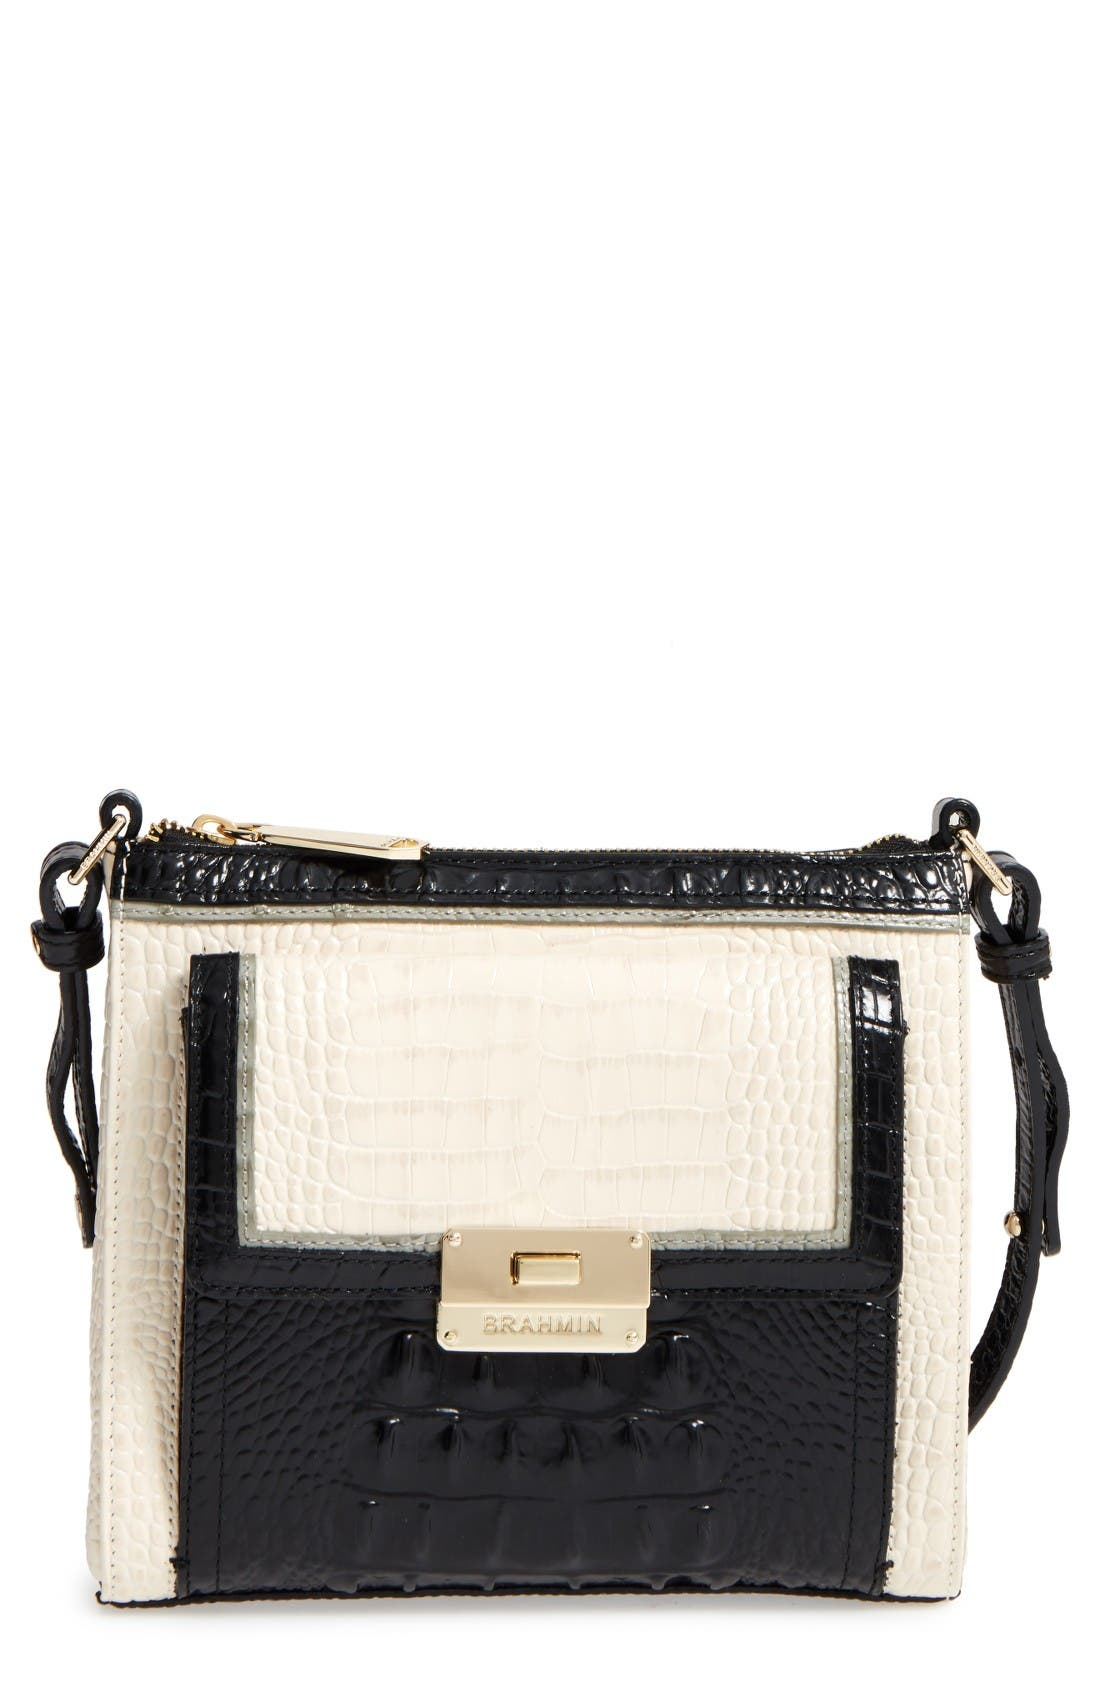 Alternate Image 1 Selected - Brahmin 'Mimosa' Crossbody Bag